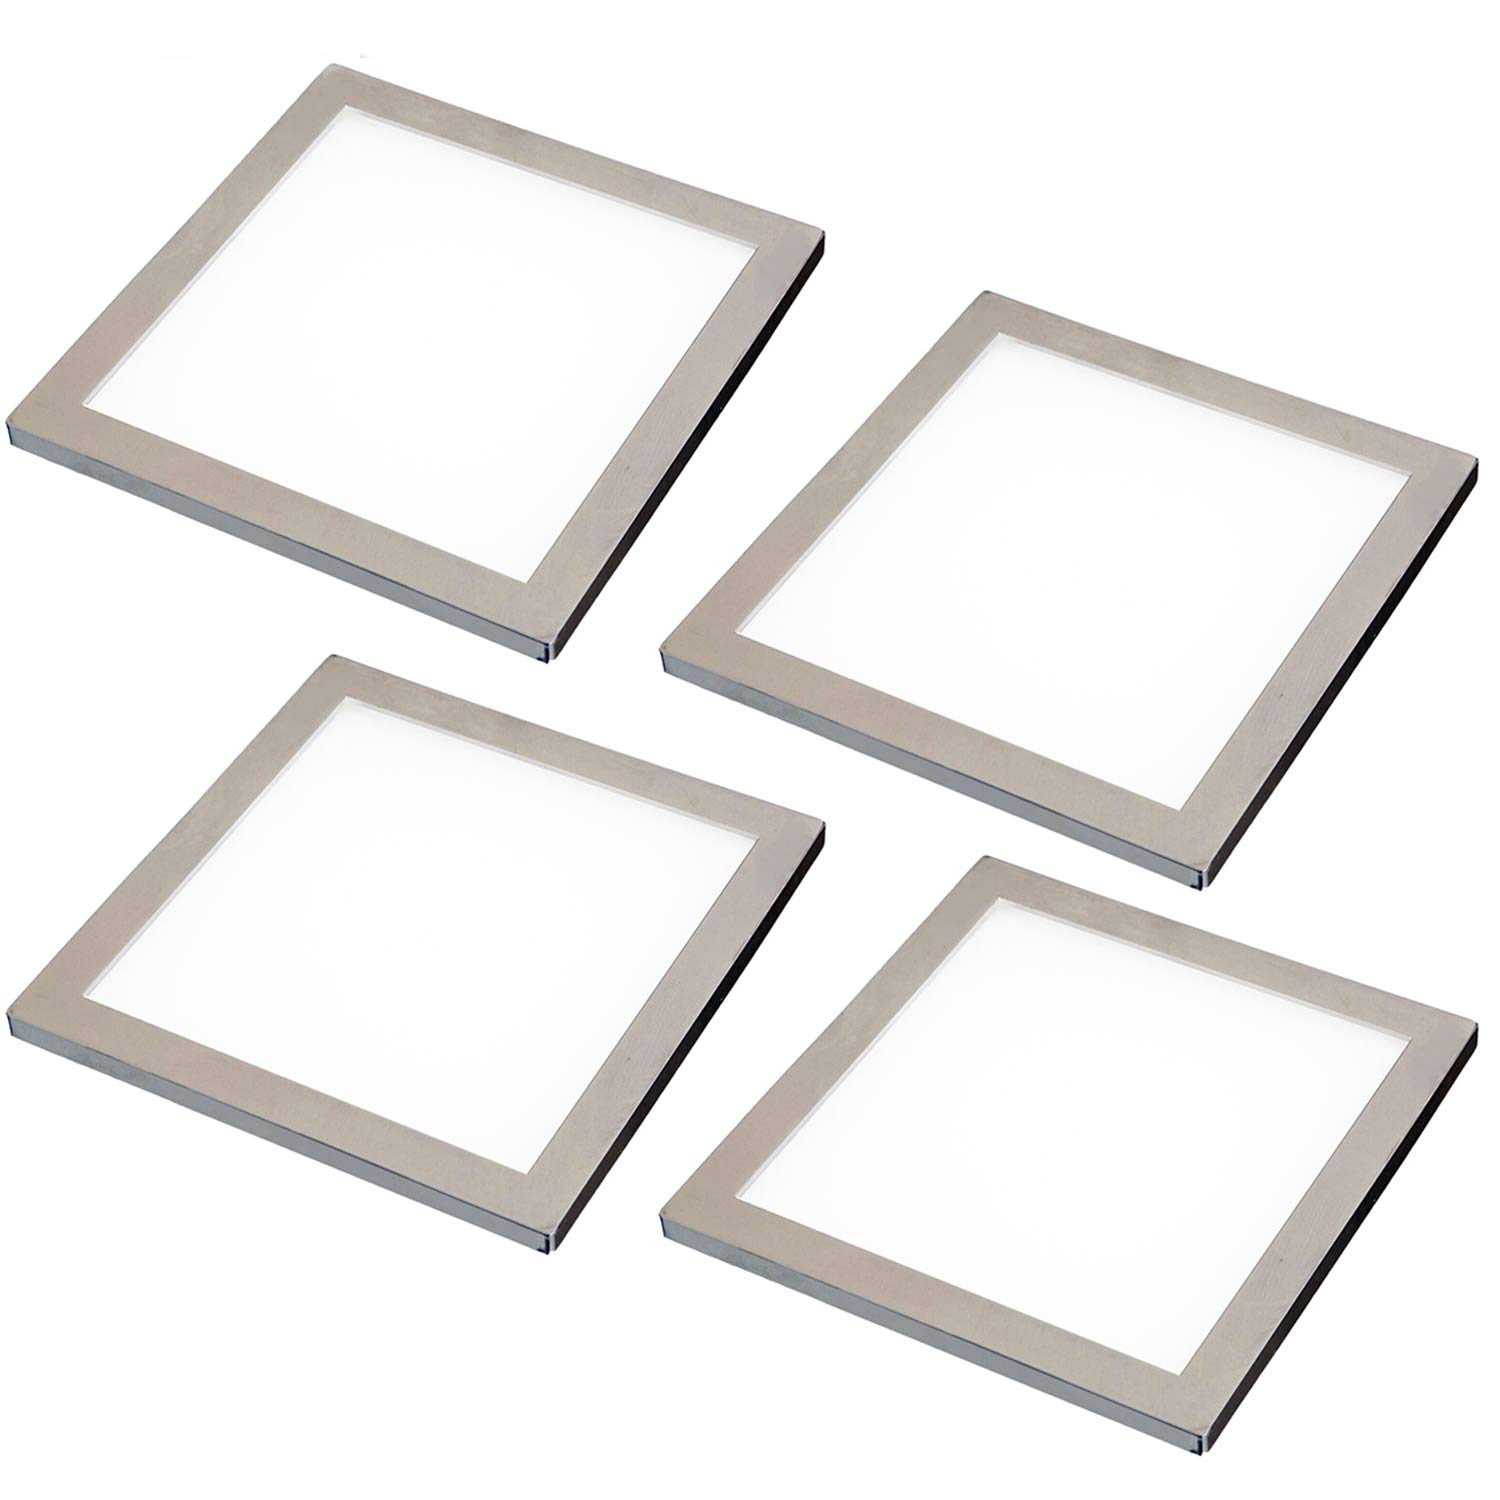 4X LED Under Cabinet/Cupboard Square Panel Kitchen Light & Driver Kit - Brushed Nickel Finish - Natural/Cool White Lighting Beam - Recessed/Flush Mounted - Counter/Worktop Down Lights - Loops